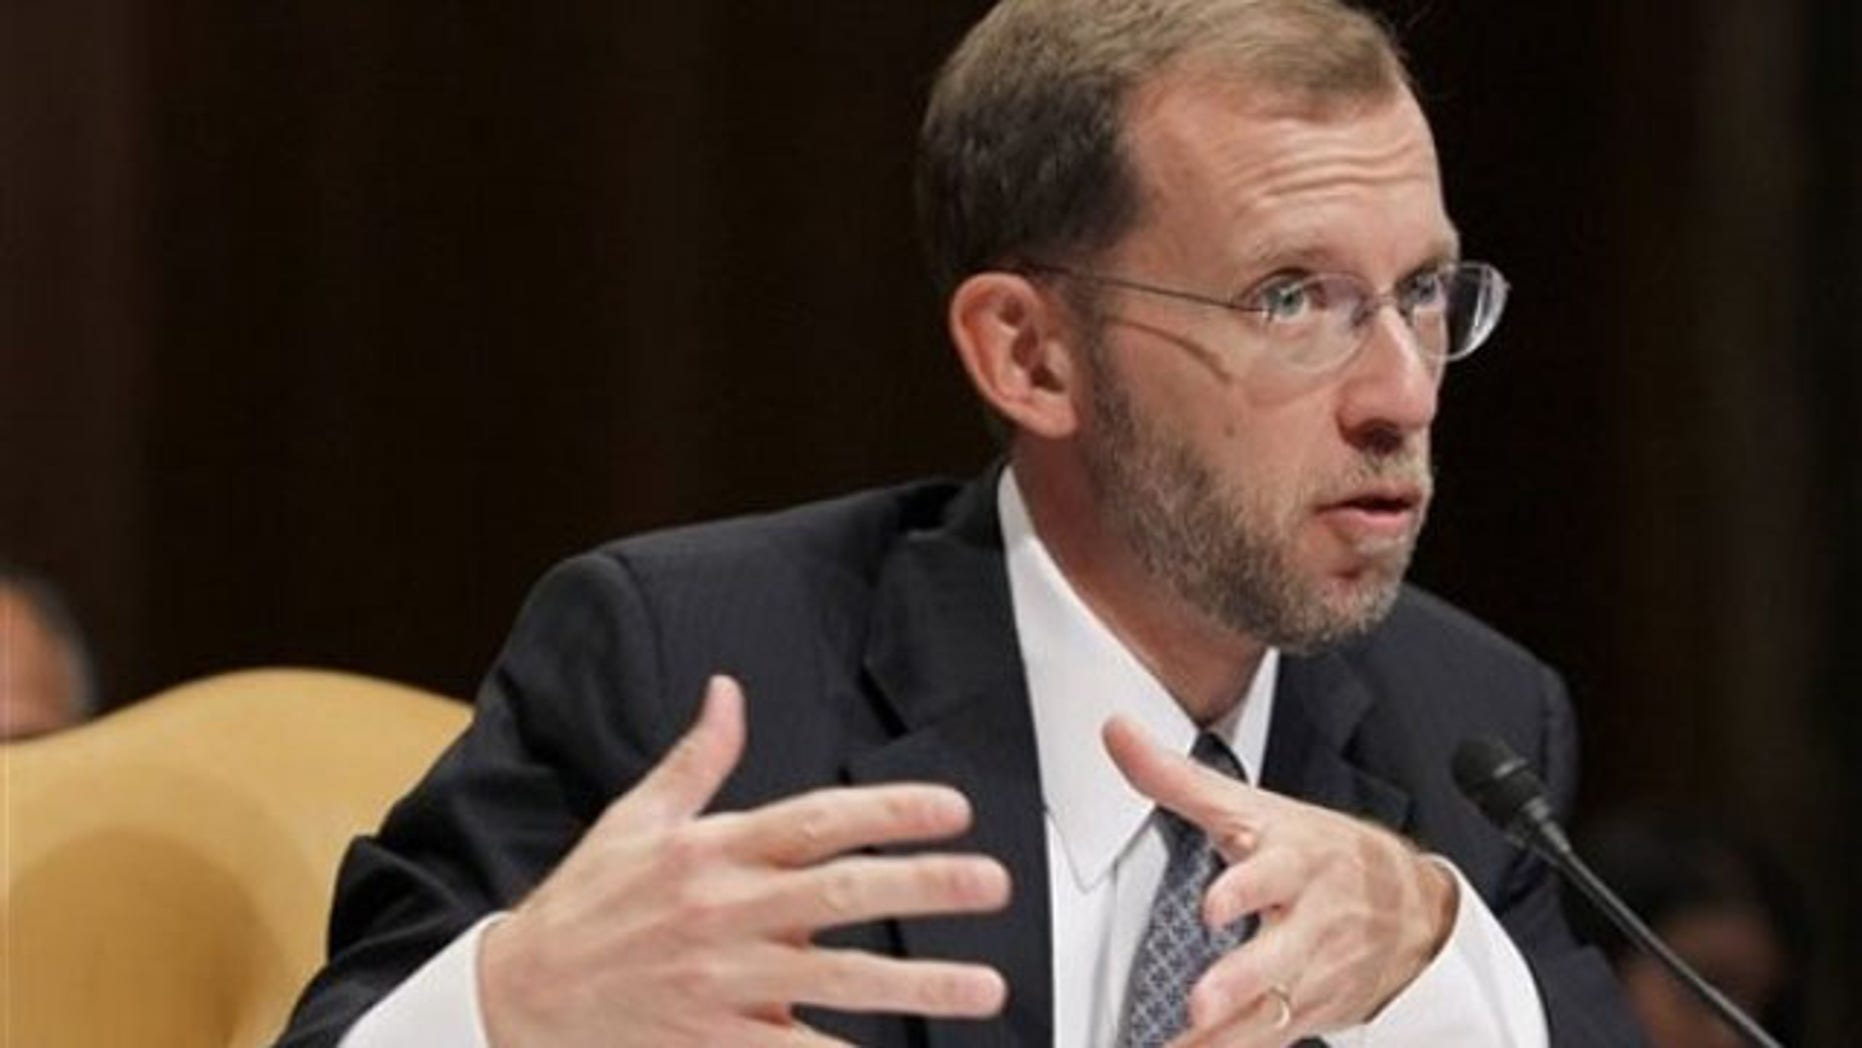 FILE: In this Sept. 28, 2010, photo, Congressional Budget Office Director Douglas Elmendorf testifies on Capitol Hill.